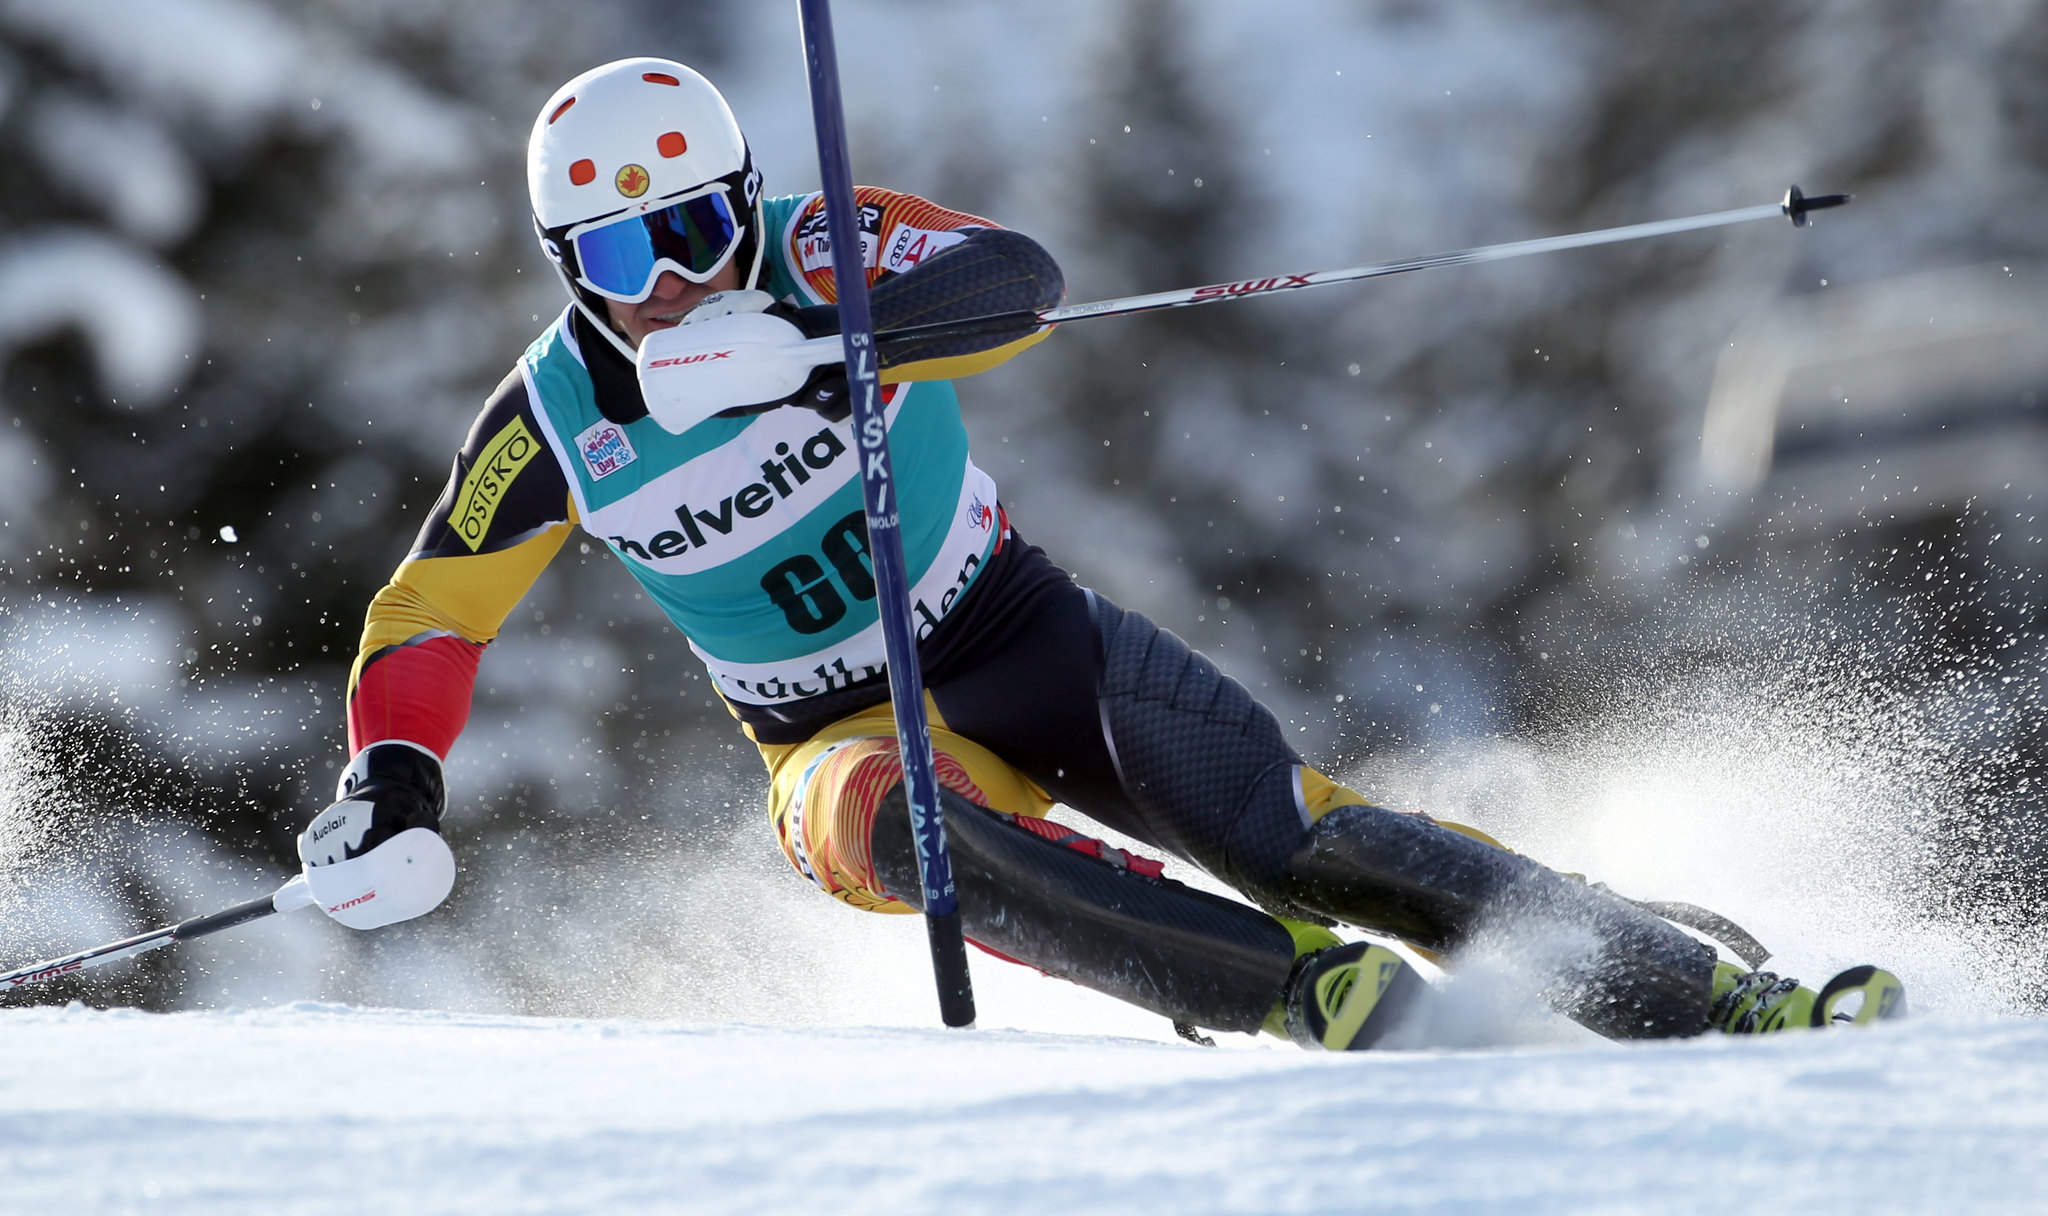 Sasha Zaitsoff in action in the men's slalom in Adelboden, Switzerland.